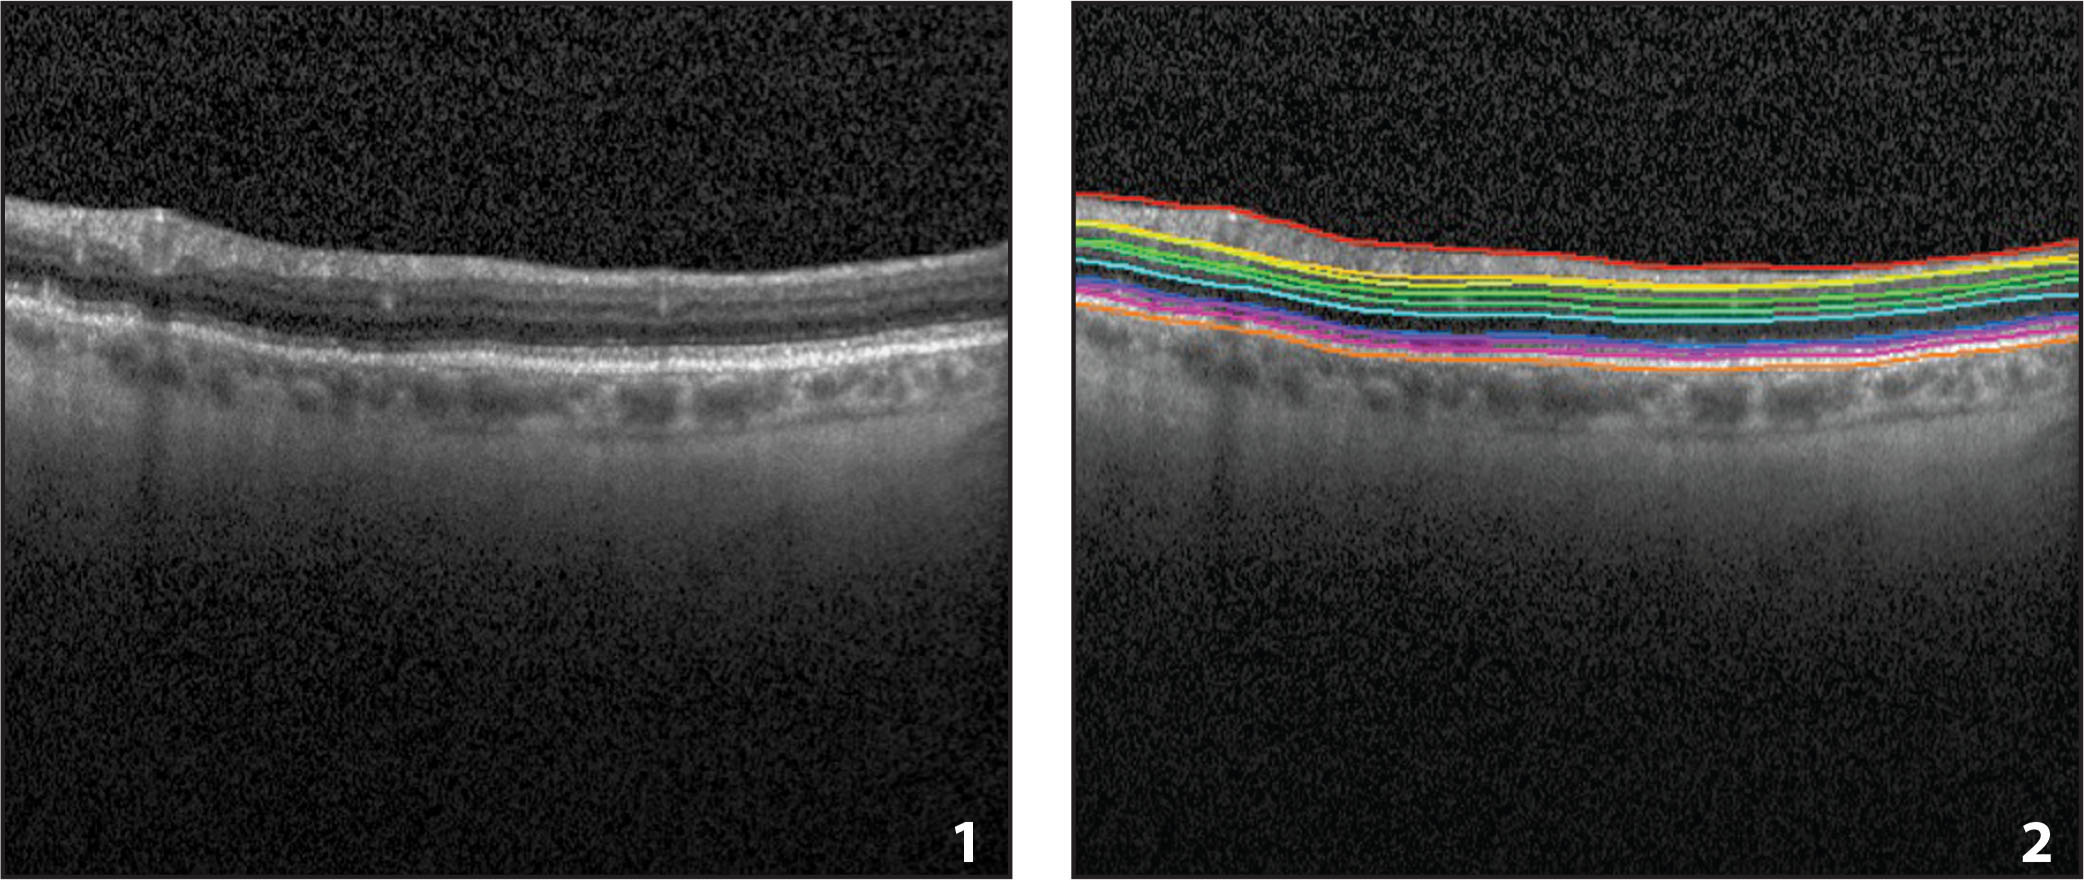 The Iowa Reference Algorithms: (1) One example B-scan from a Spectralis optical coherence tomography image. (2) The same B-scan with the segmentation from the Iowa Reference Algorithms.